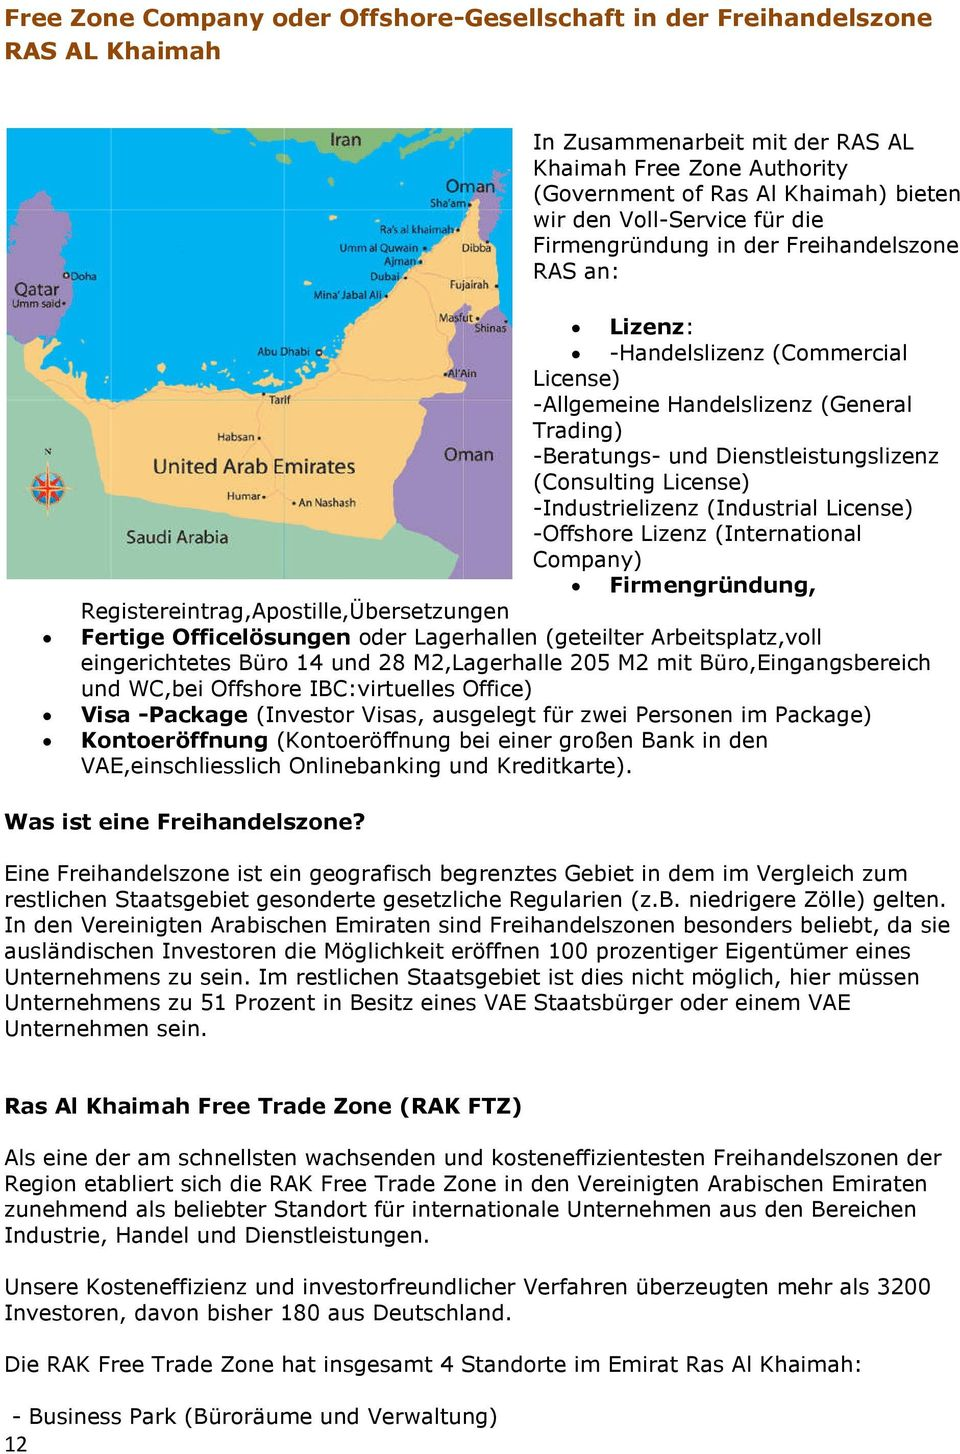 (Consulting License) -Industrielizenz (Industrial License) -Offshore Lizenz (International Company) Firmengründung, Registereintrag,Apostille,Übersetzungen Fertige Officelösungen oder Lagerhallen